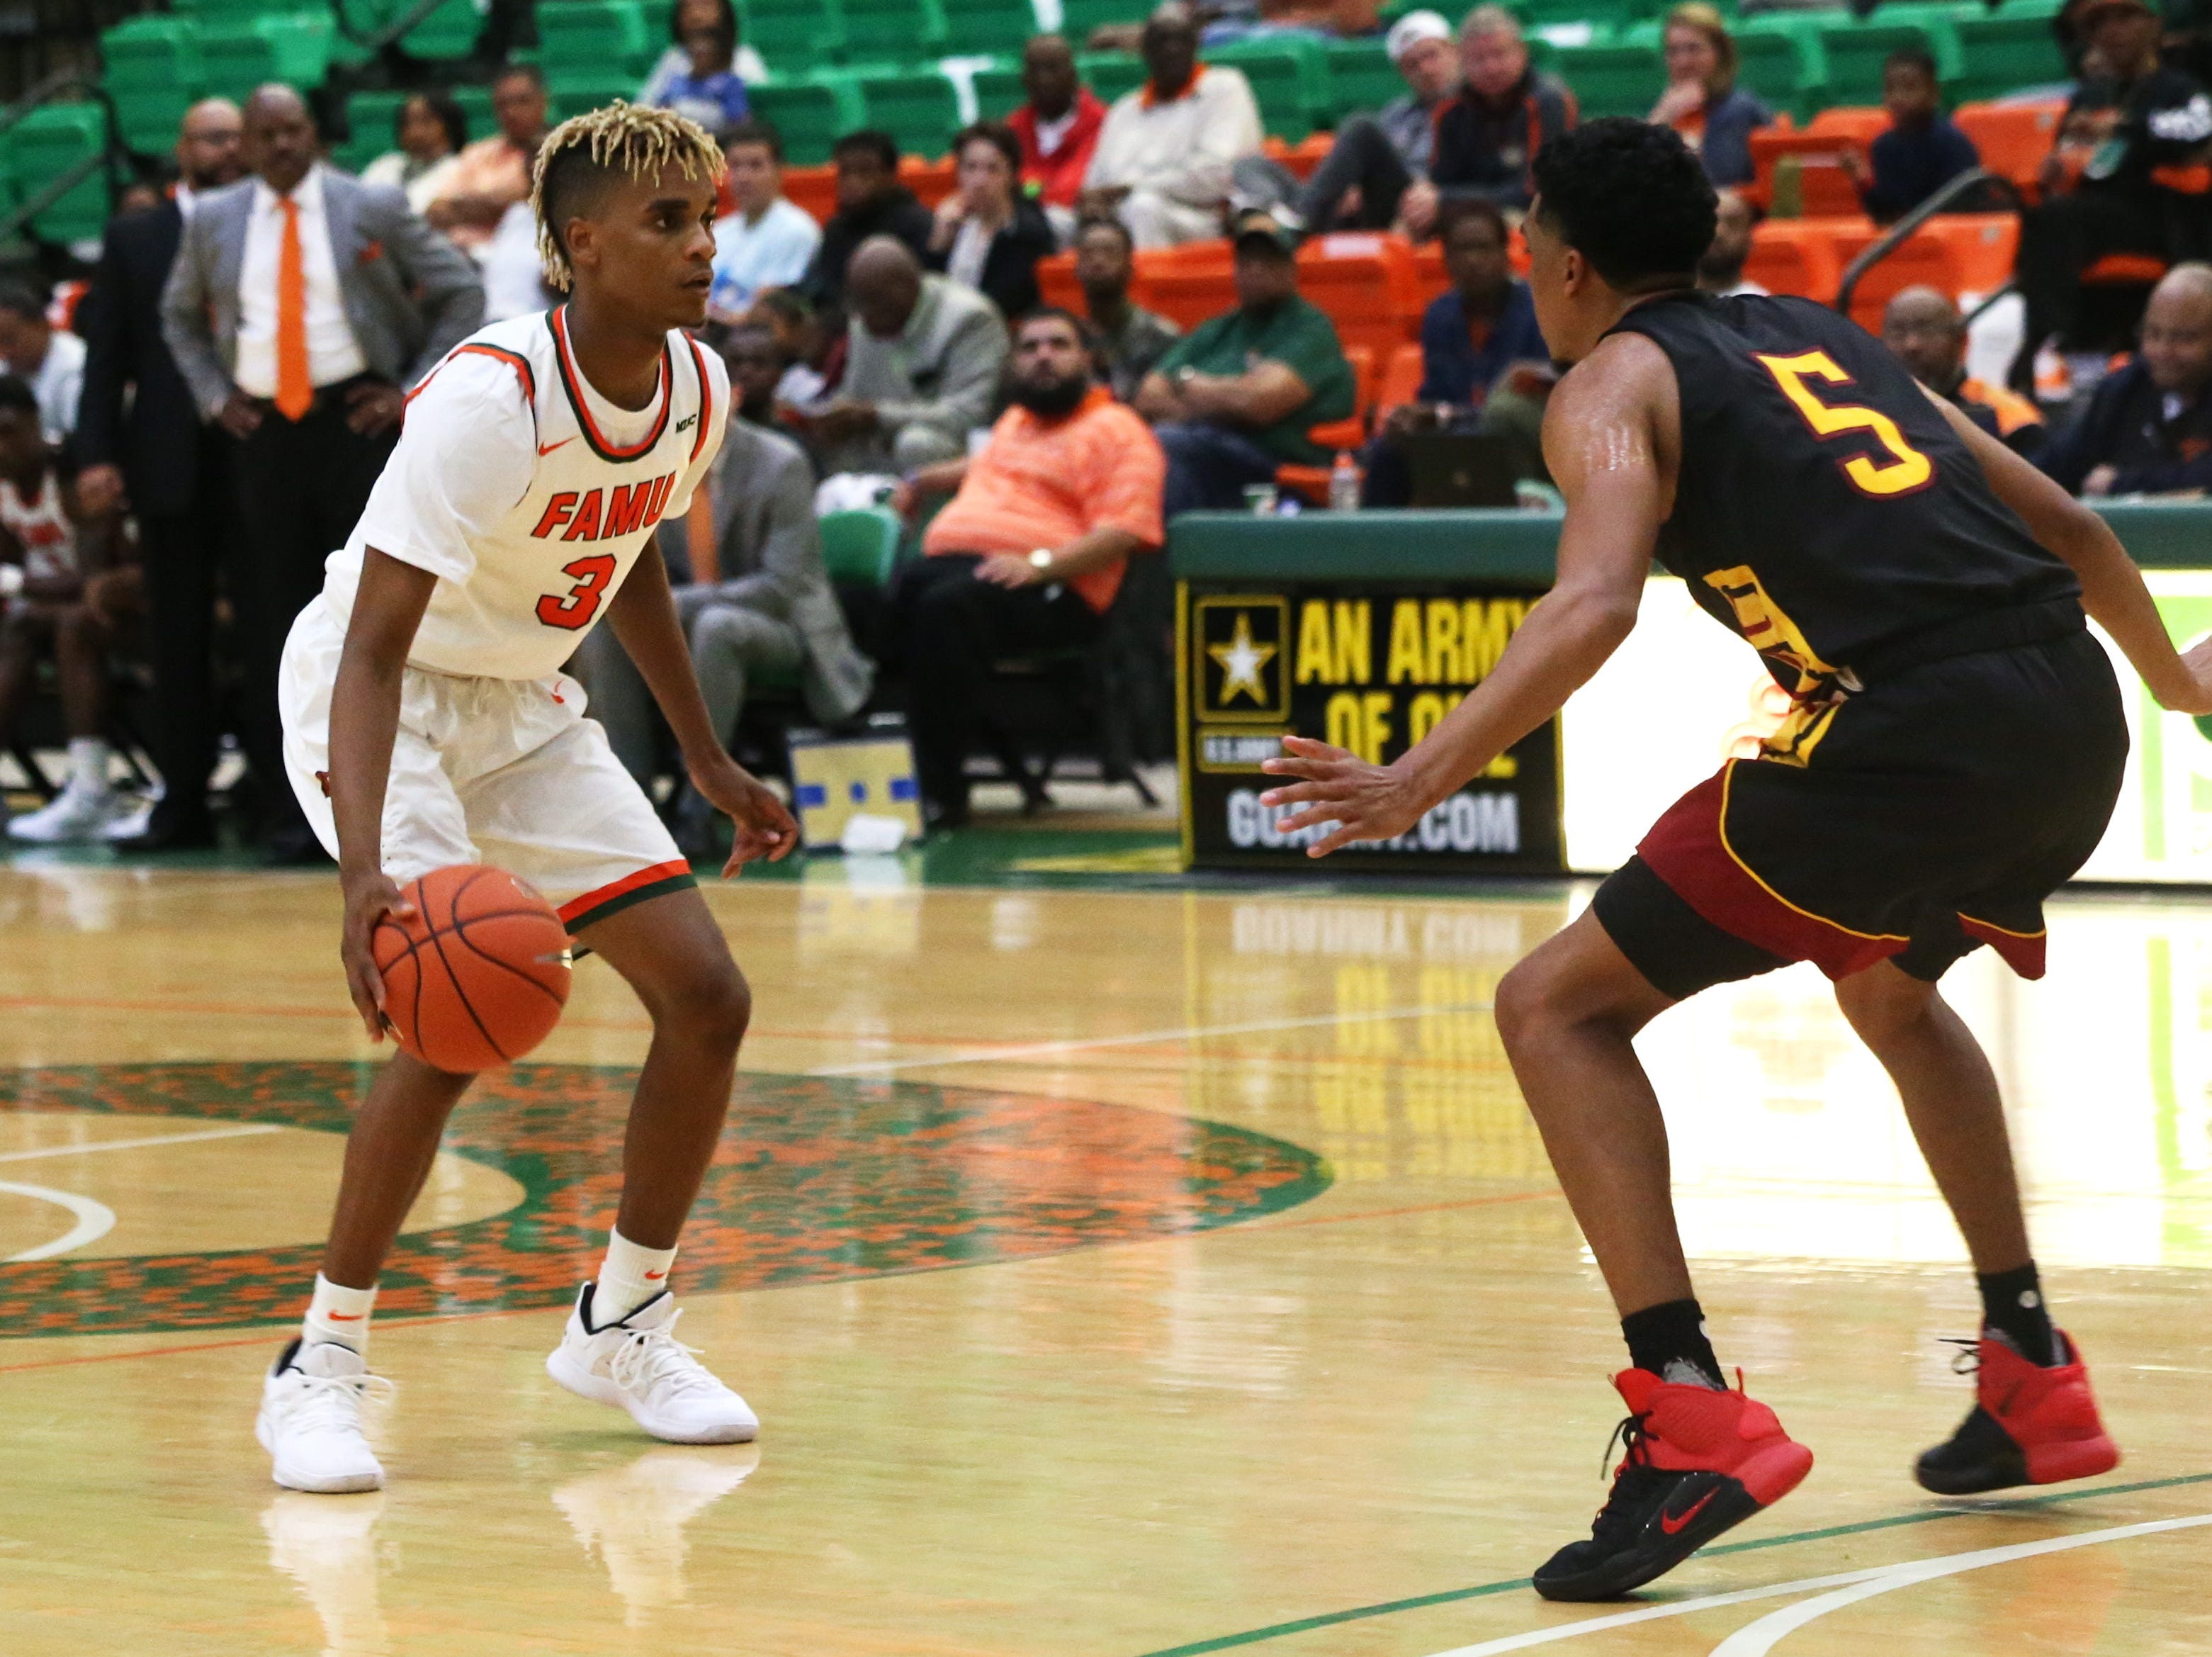 Florida A&M Rattlers guard MJ Randolph (3) does fancy footwork to throw off his defender as the FAMU Rattlers take on the Tuskegee Golden Tigers in their first home game of the season in the Lawson Center, Saturday, Nov. 10, 2018.